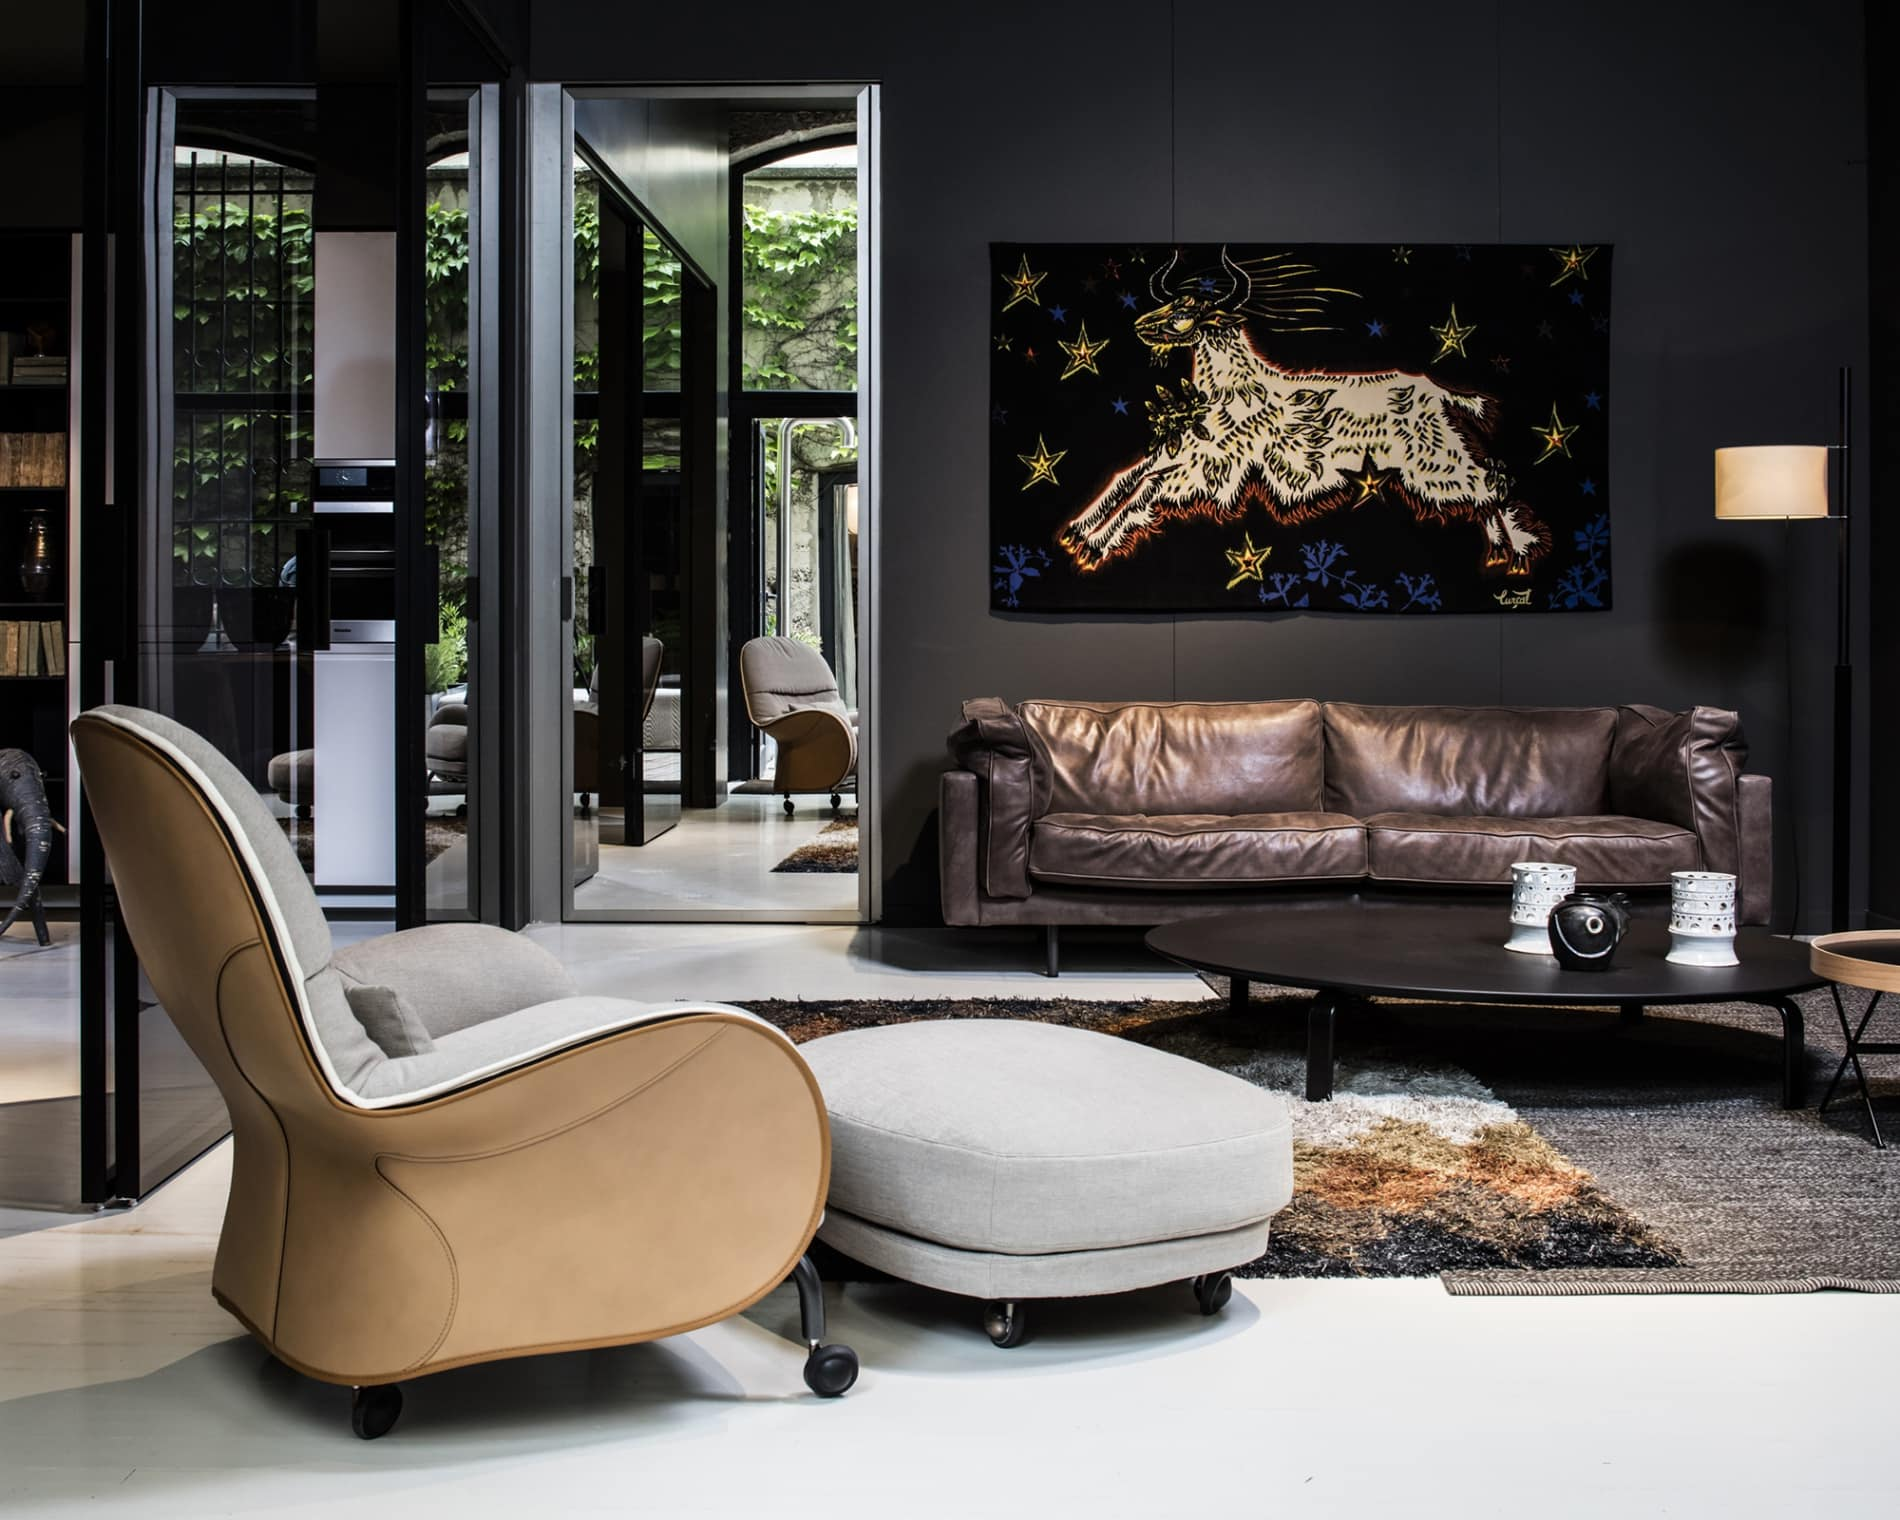 The De Padova collection at Boffi Lyon